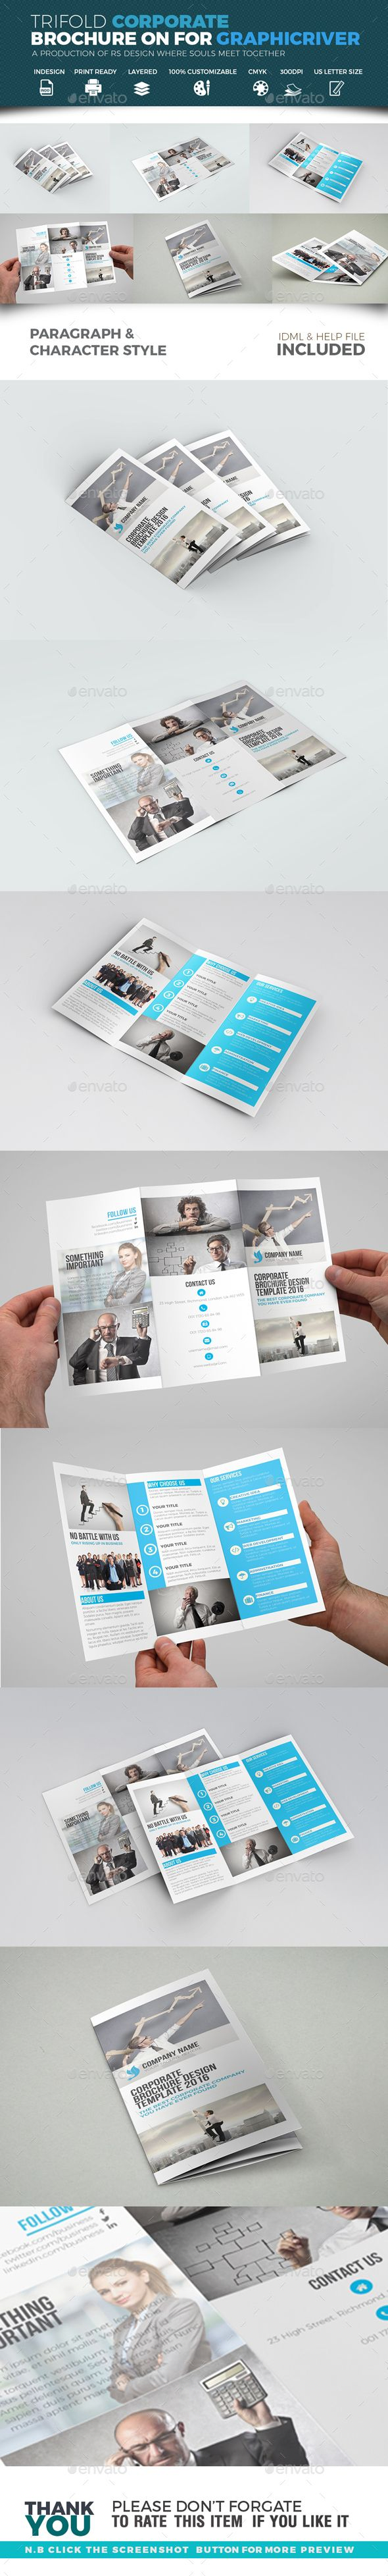 Pretty Indesign Case Study Template Images >> Case Study Template ...